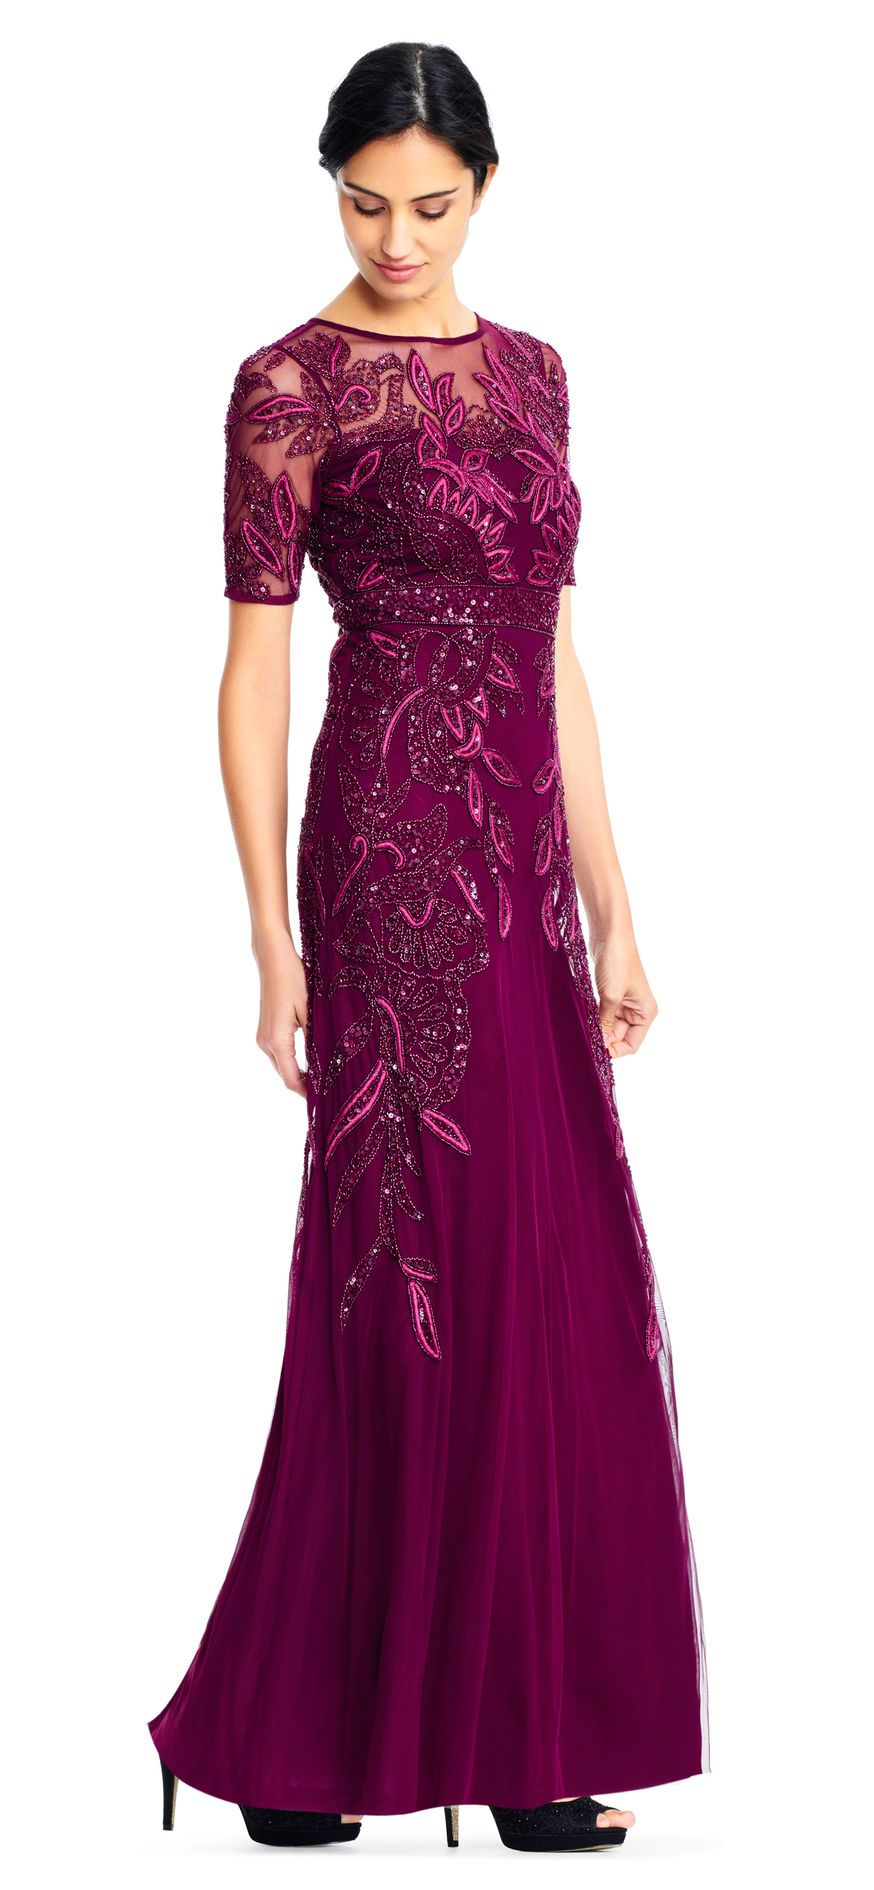 Vine beaded gown with illusion short sleeve illusions short